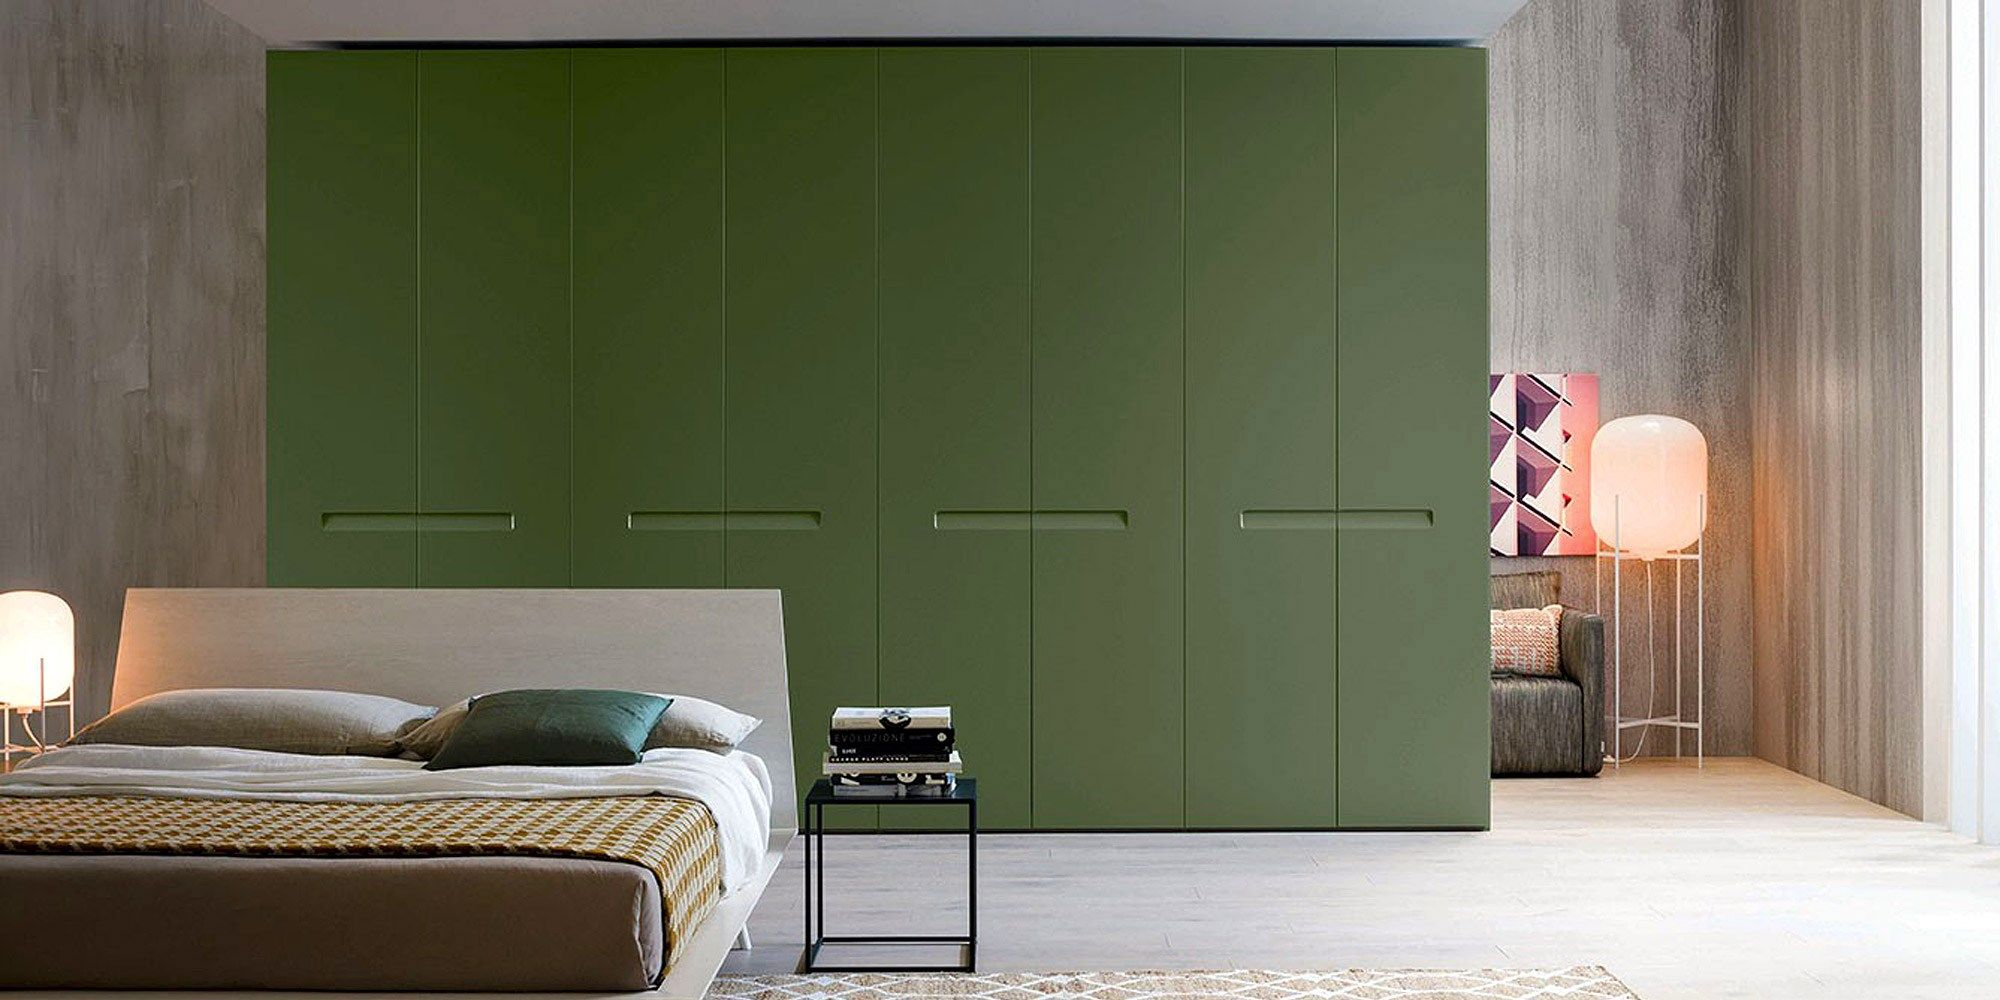 Novamobili Bedrooms Available From Channel Island Ceramics Guernsey Wardrobe